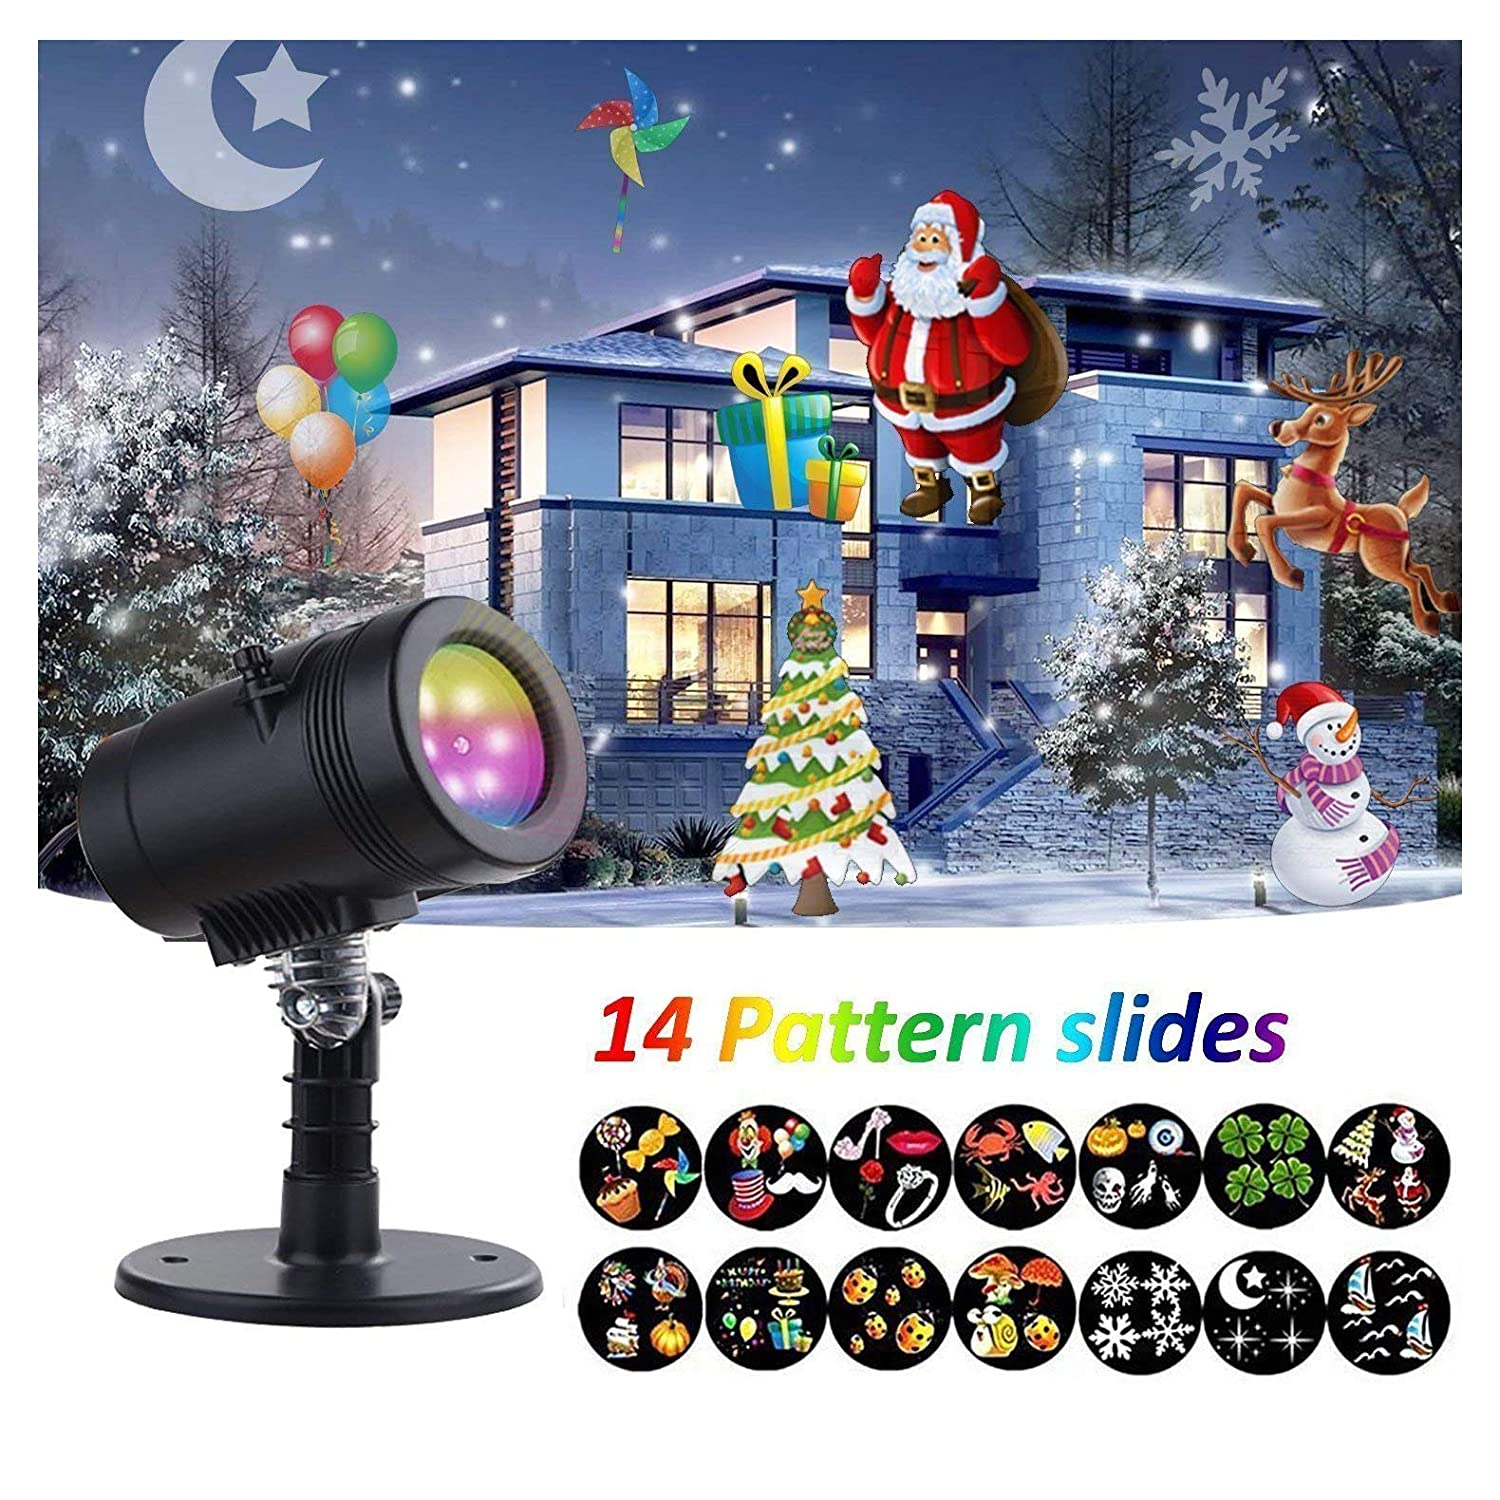 Rotating Projector Spotlight, YMing Garden Projector with 14 Patterns Waterproof Outdoor Rotating Light Projection Spotlight for Christmas Halloween Party Garden Outdoor and Indoor Decorate [Energy Class A++]